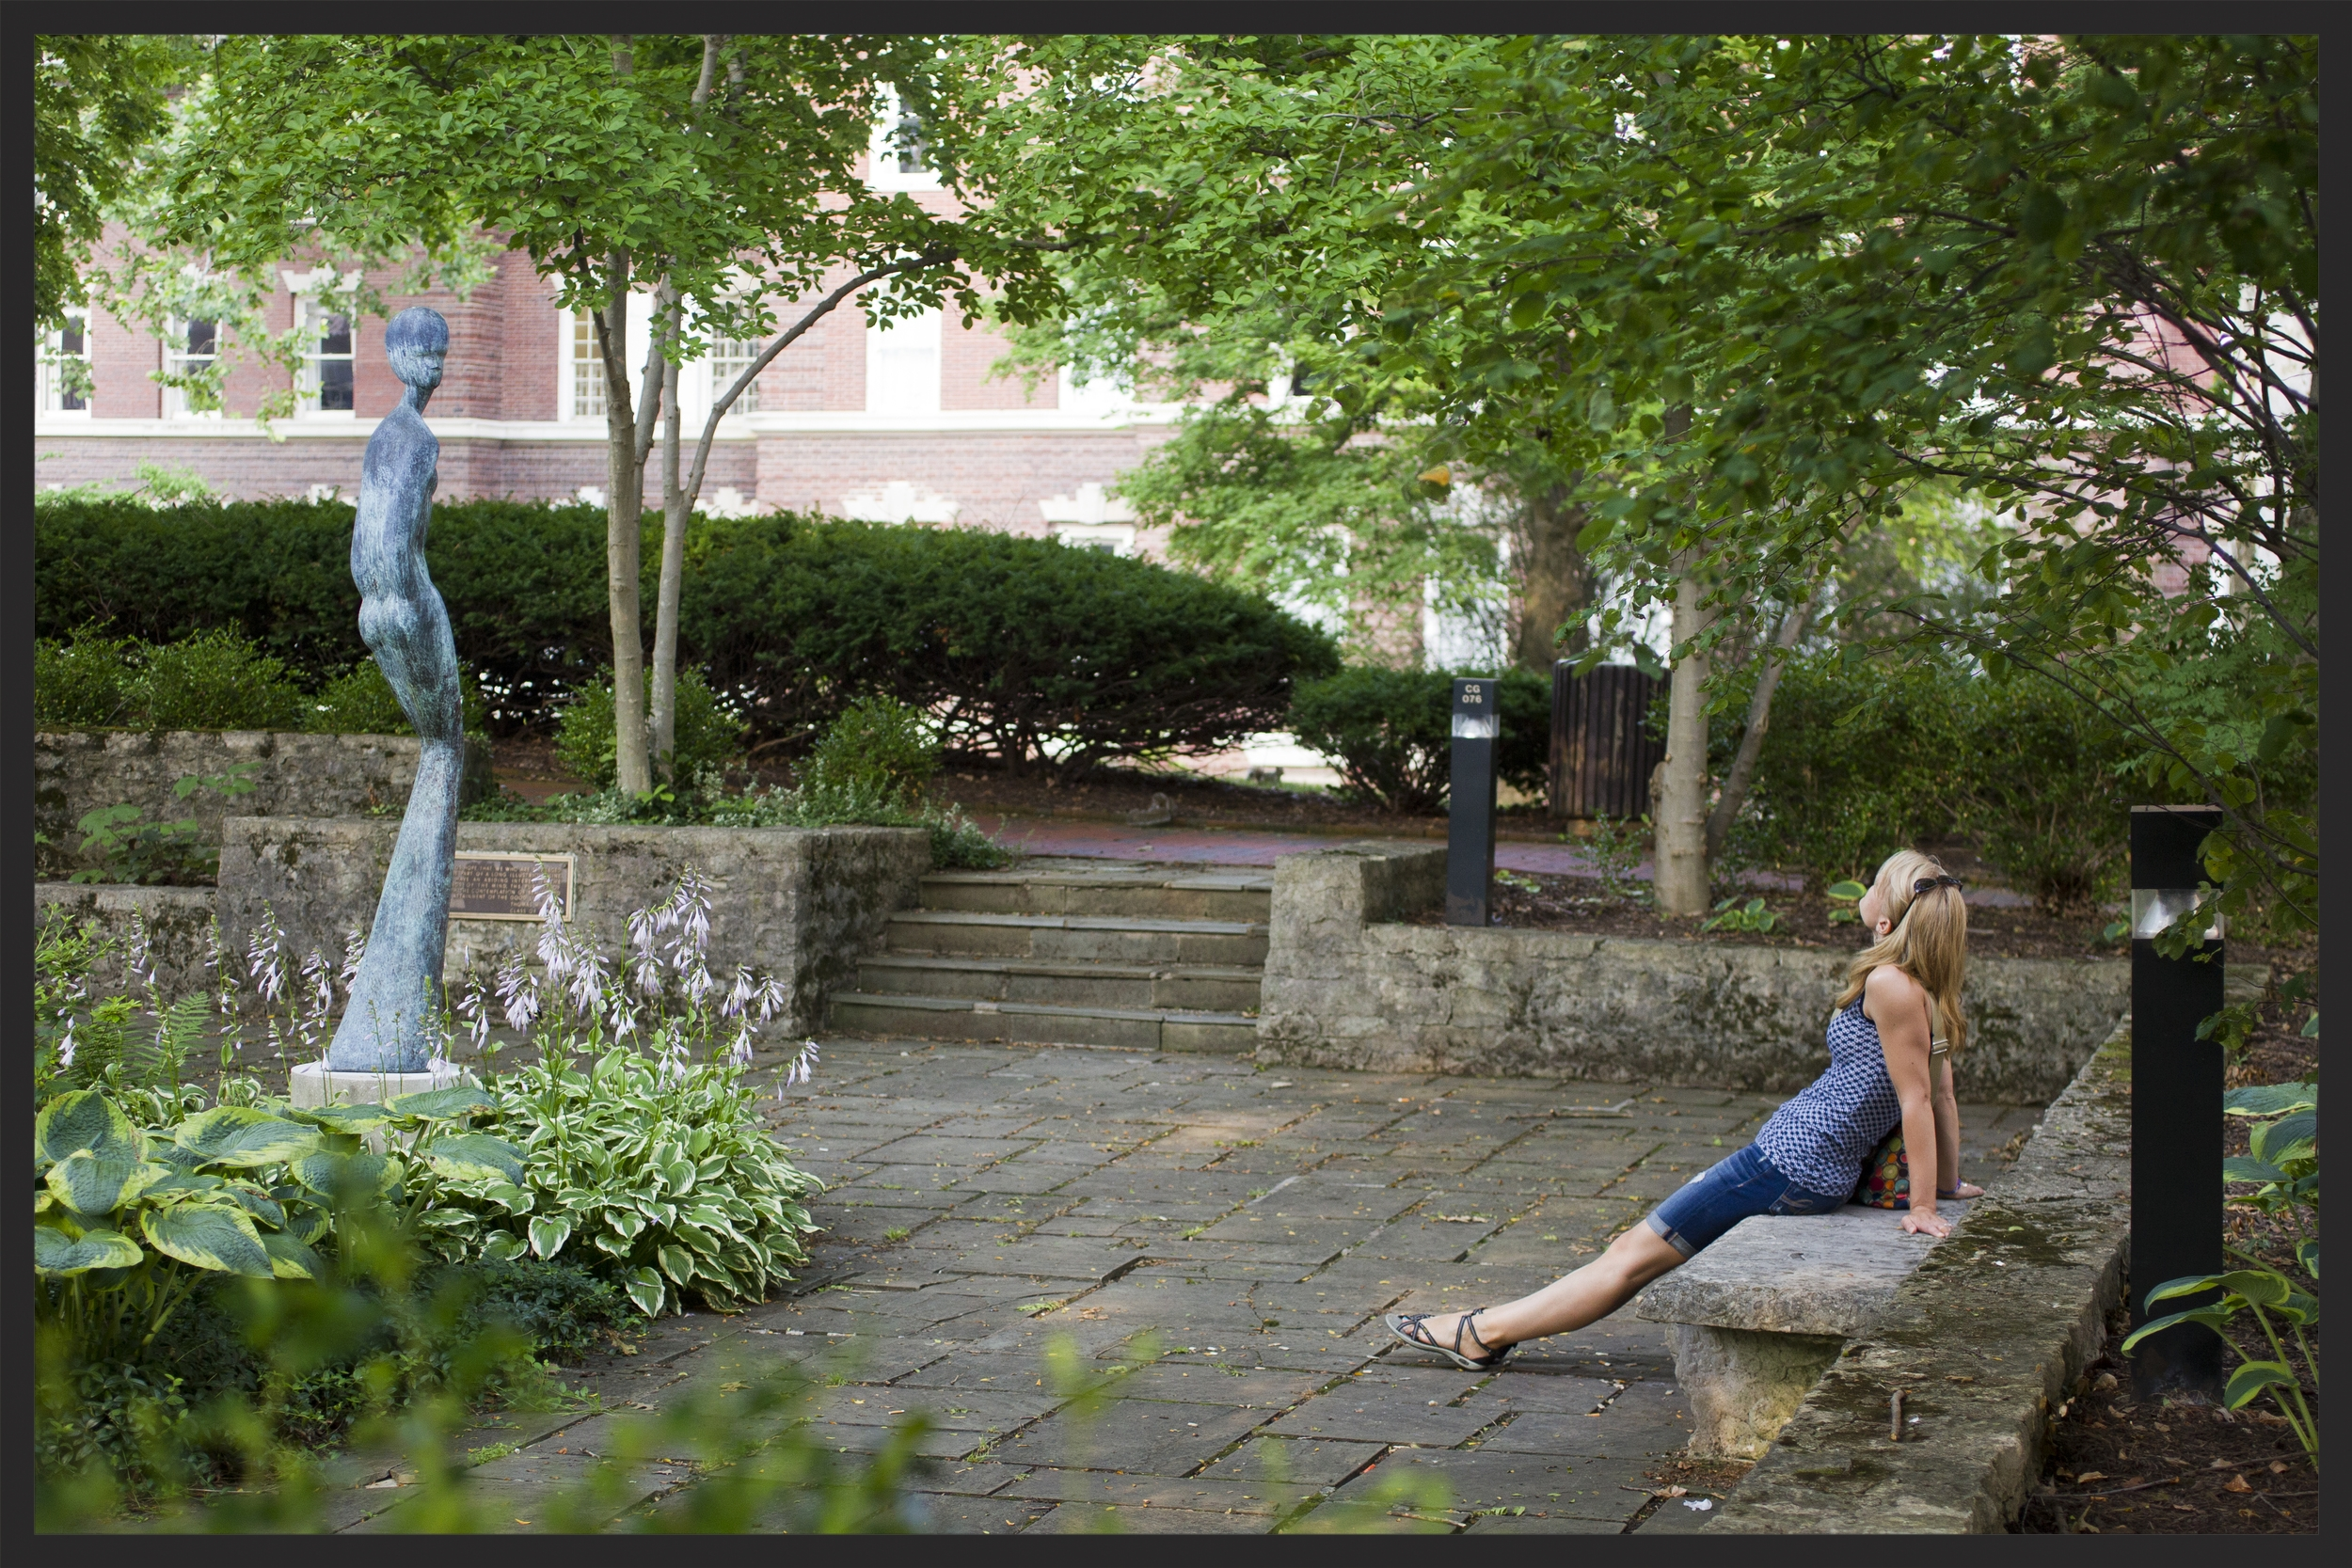 I took this photo of Suzanne during our visit to the Ohio University campus in June 2014, sixteen years after we graduated. She lives in Ohio with her husband Joe, and their three kids Maya, Alyssa, and Dylan.